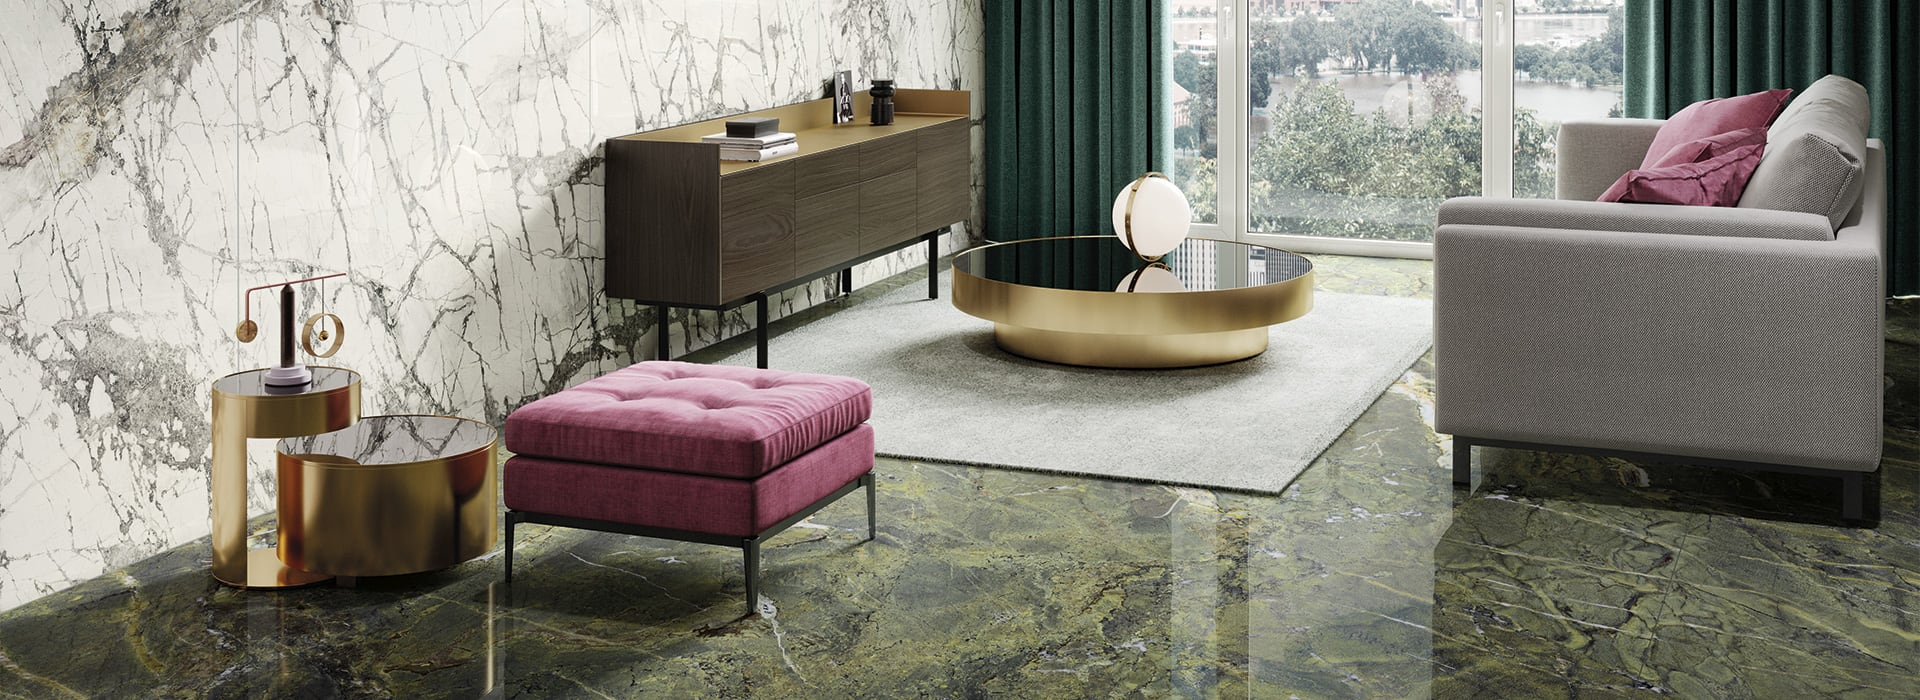 Iris Ceramica E Wood Prezzi.Fmg Collections Porcelain Floor And Wall Tiles